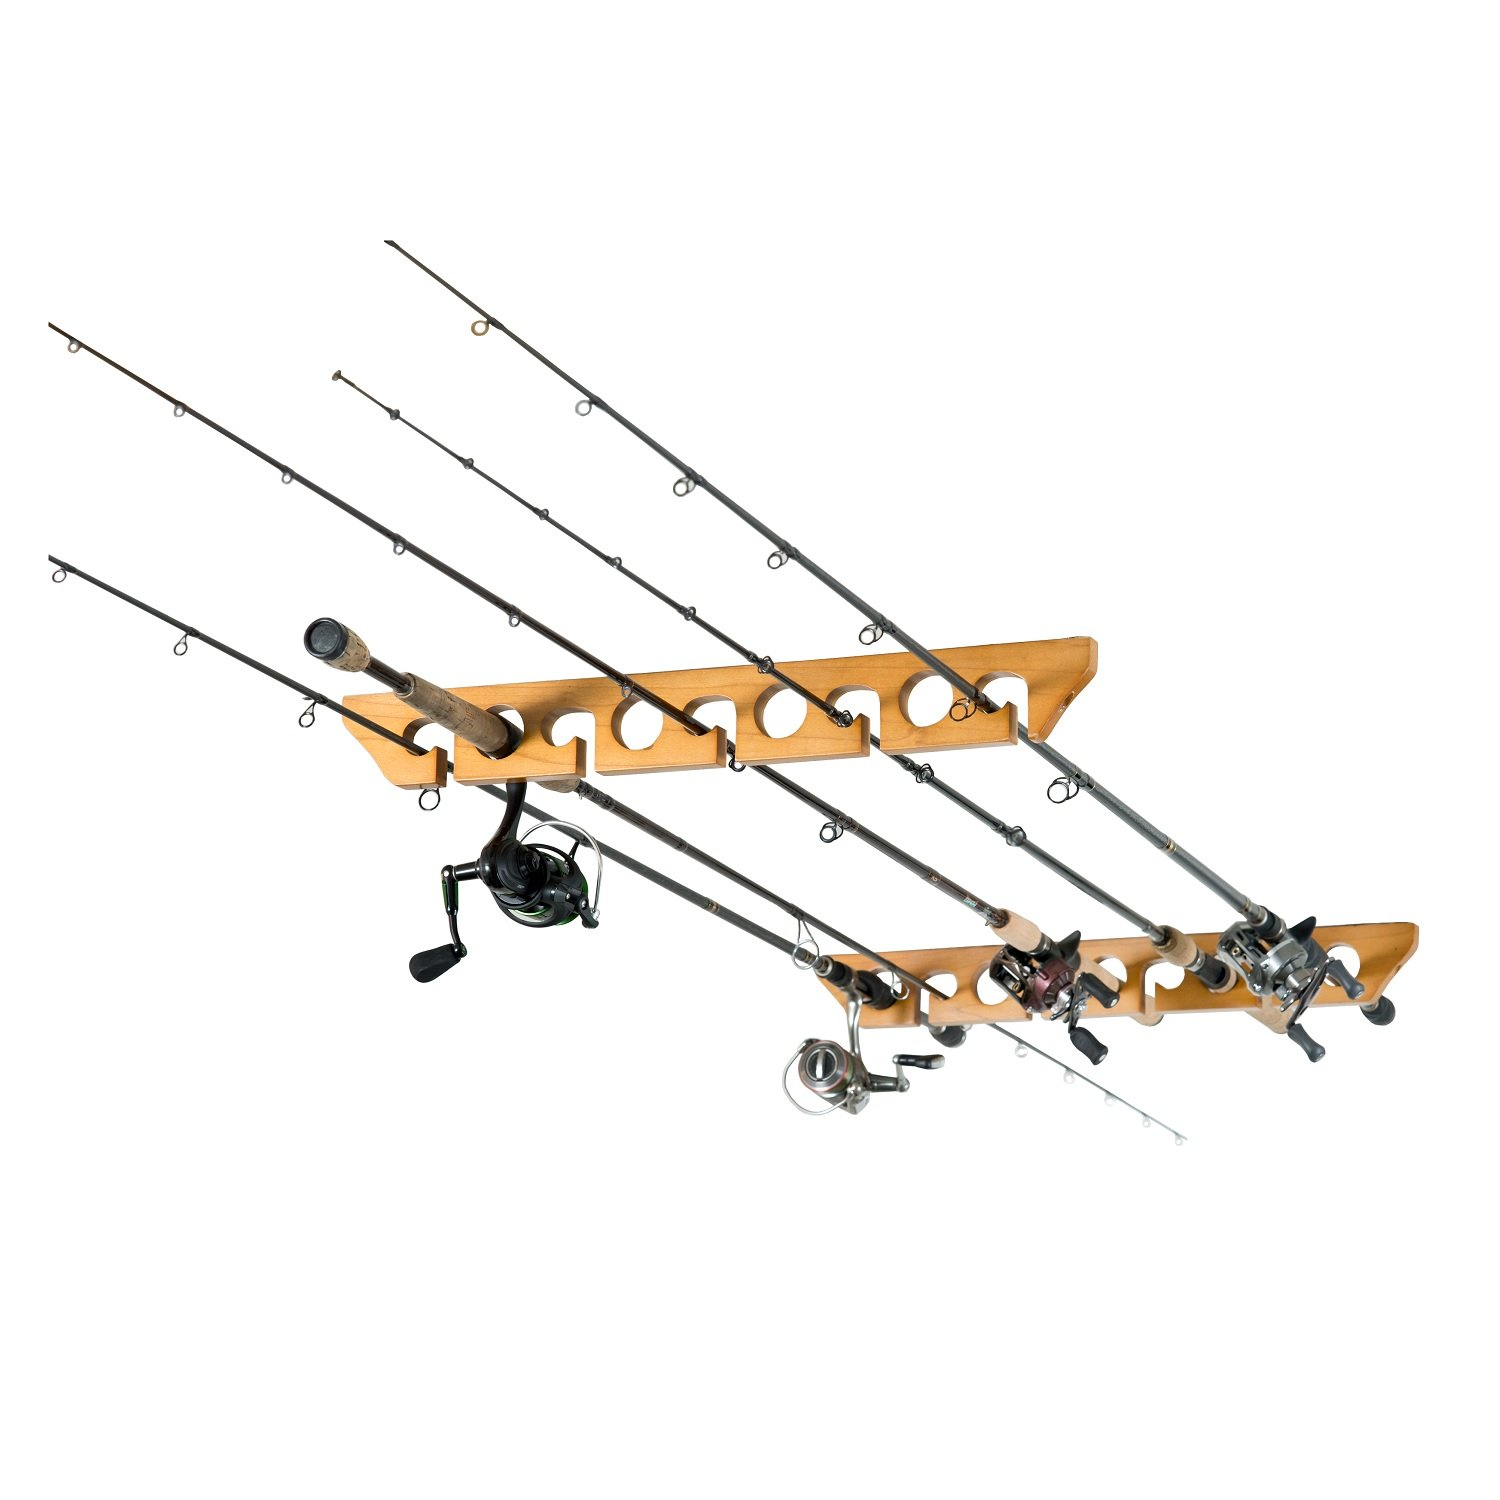 Fishing rods racks holder ceiling horizontal mount 9 rod for Fishing rod rack